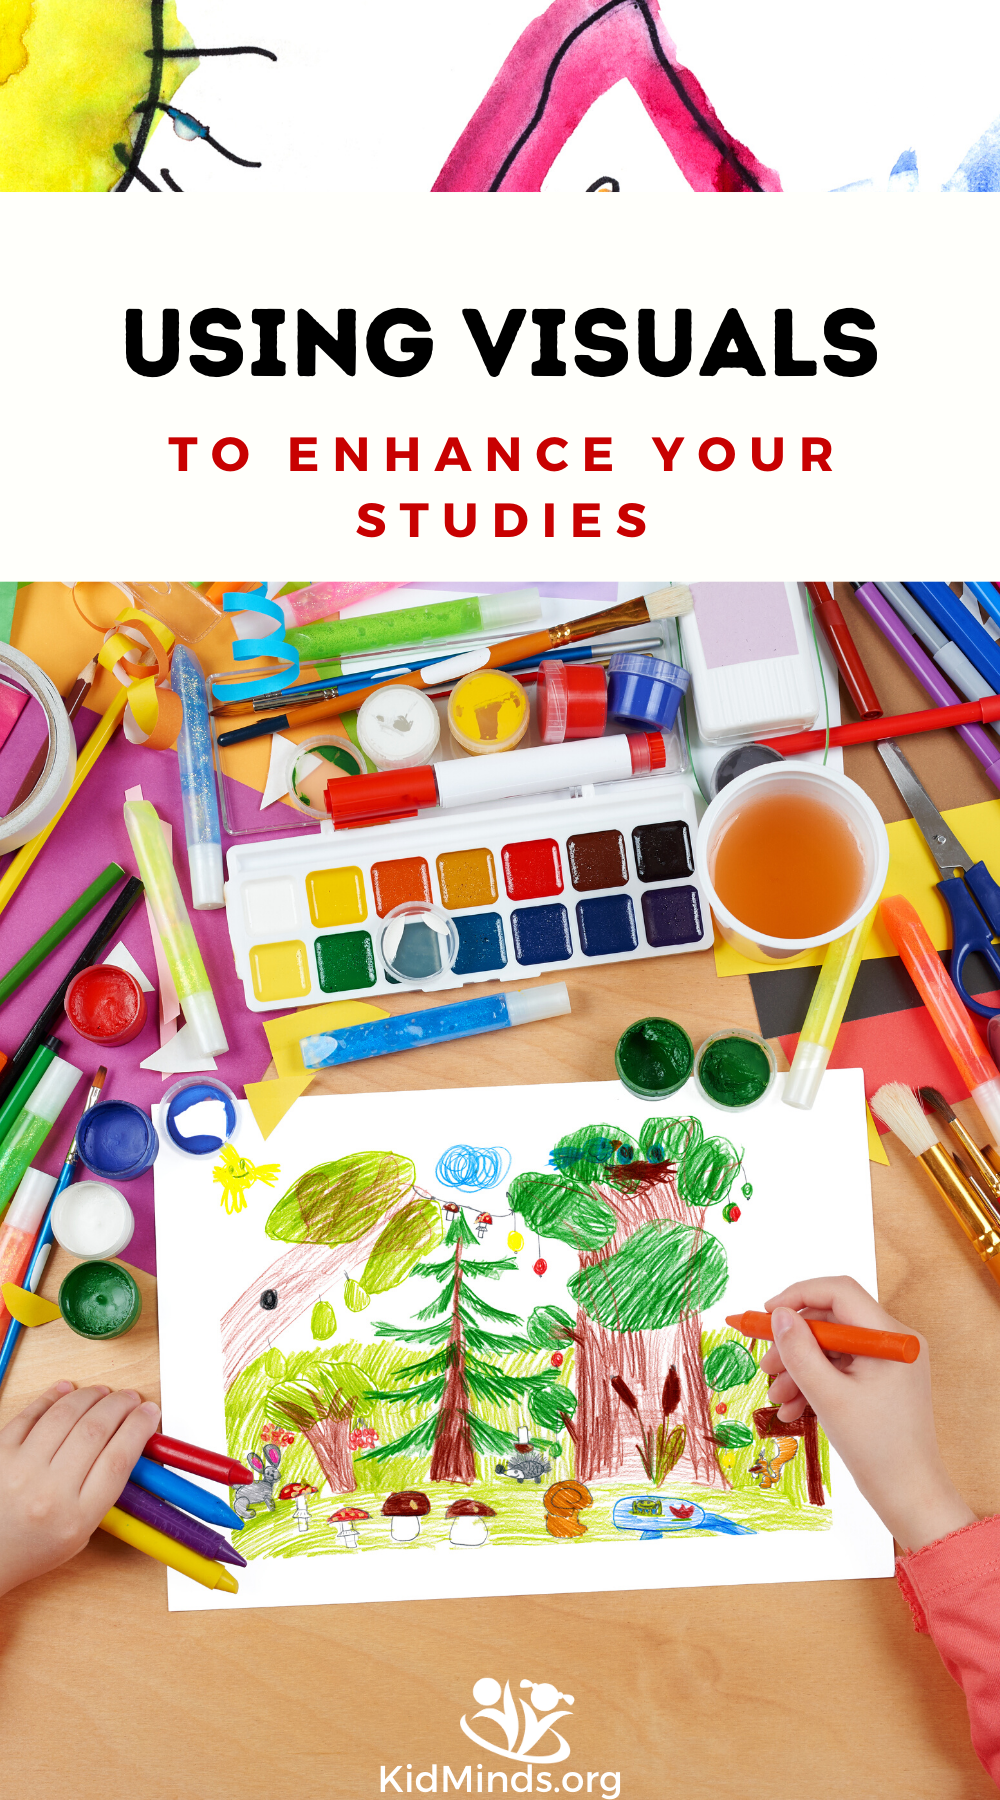 Practical tips for integrating visuals with your kids to help them better engage with the material and absorb more information. #handsonlearning #kidsactivities #howkidslearn